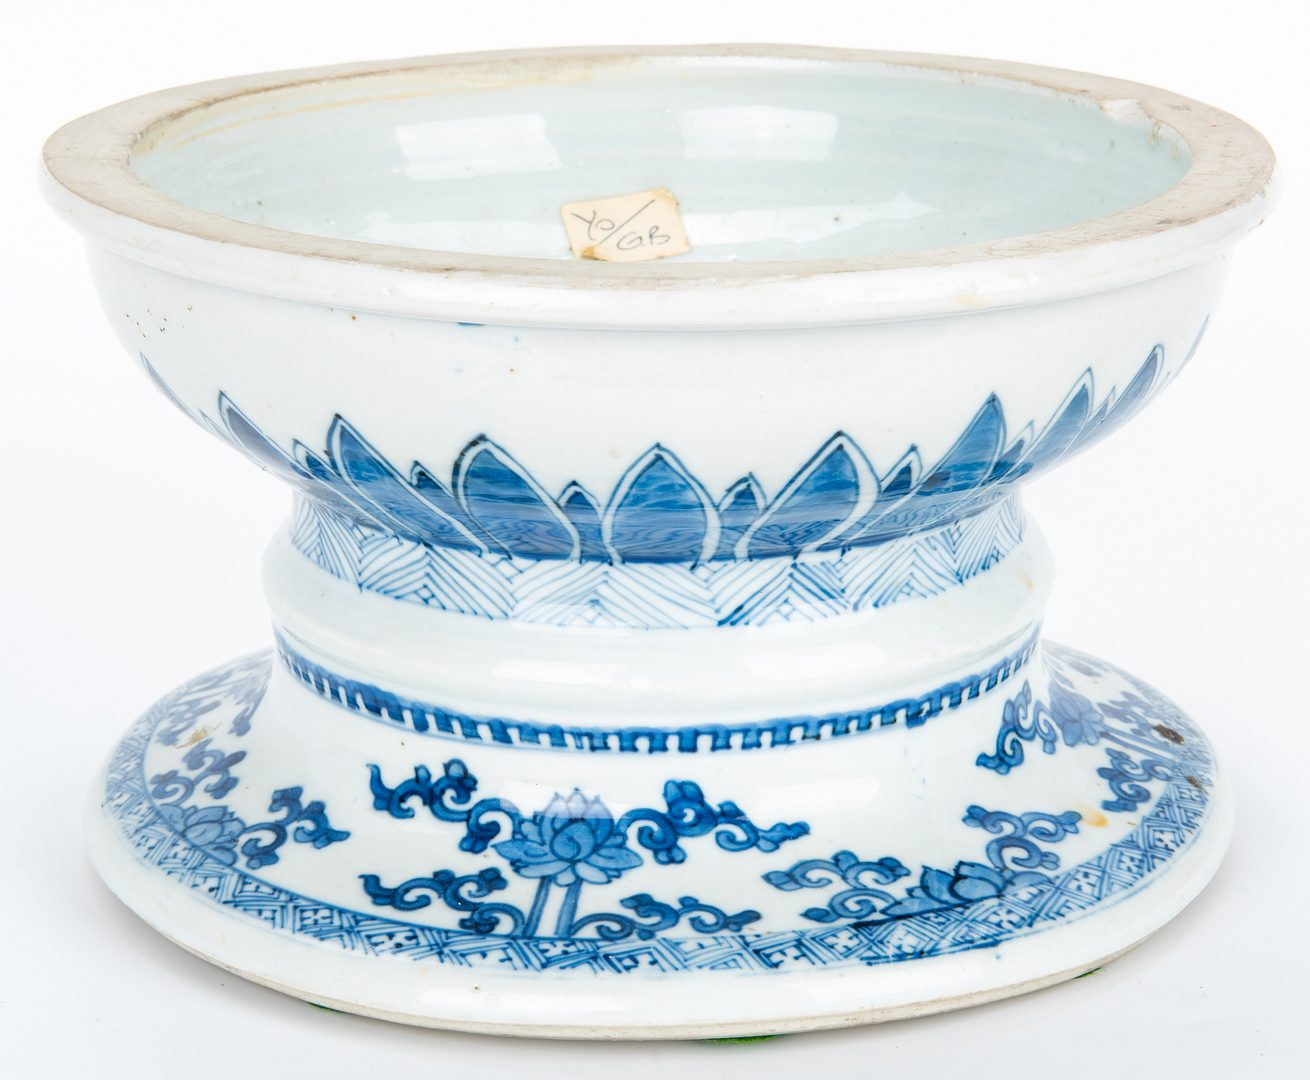 Lot 13: Asian Blue and White Bowls, Pedestal, and Jar, 5 items